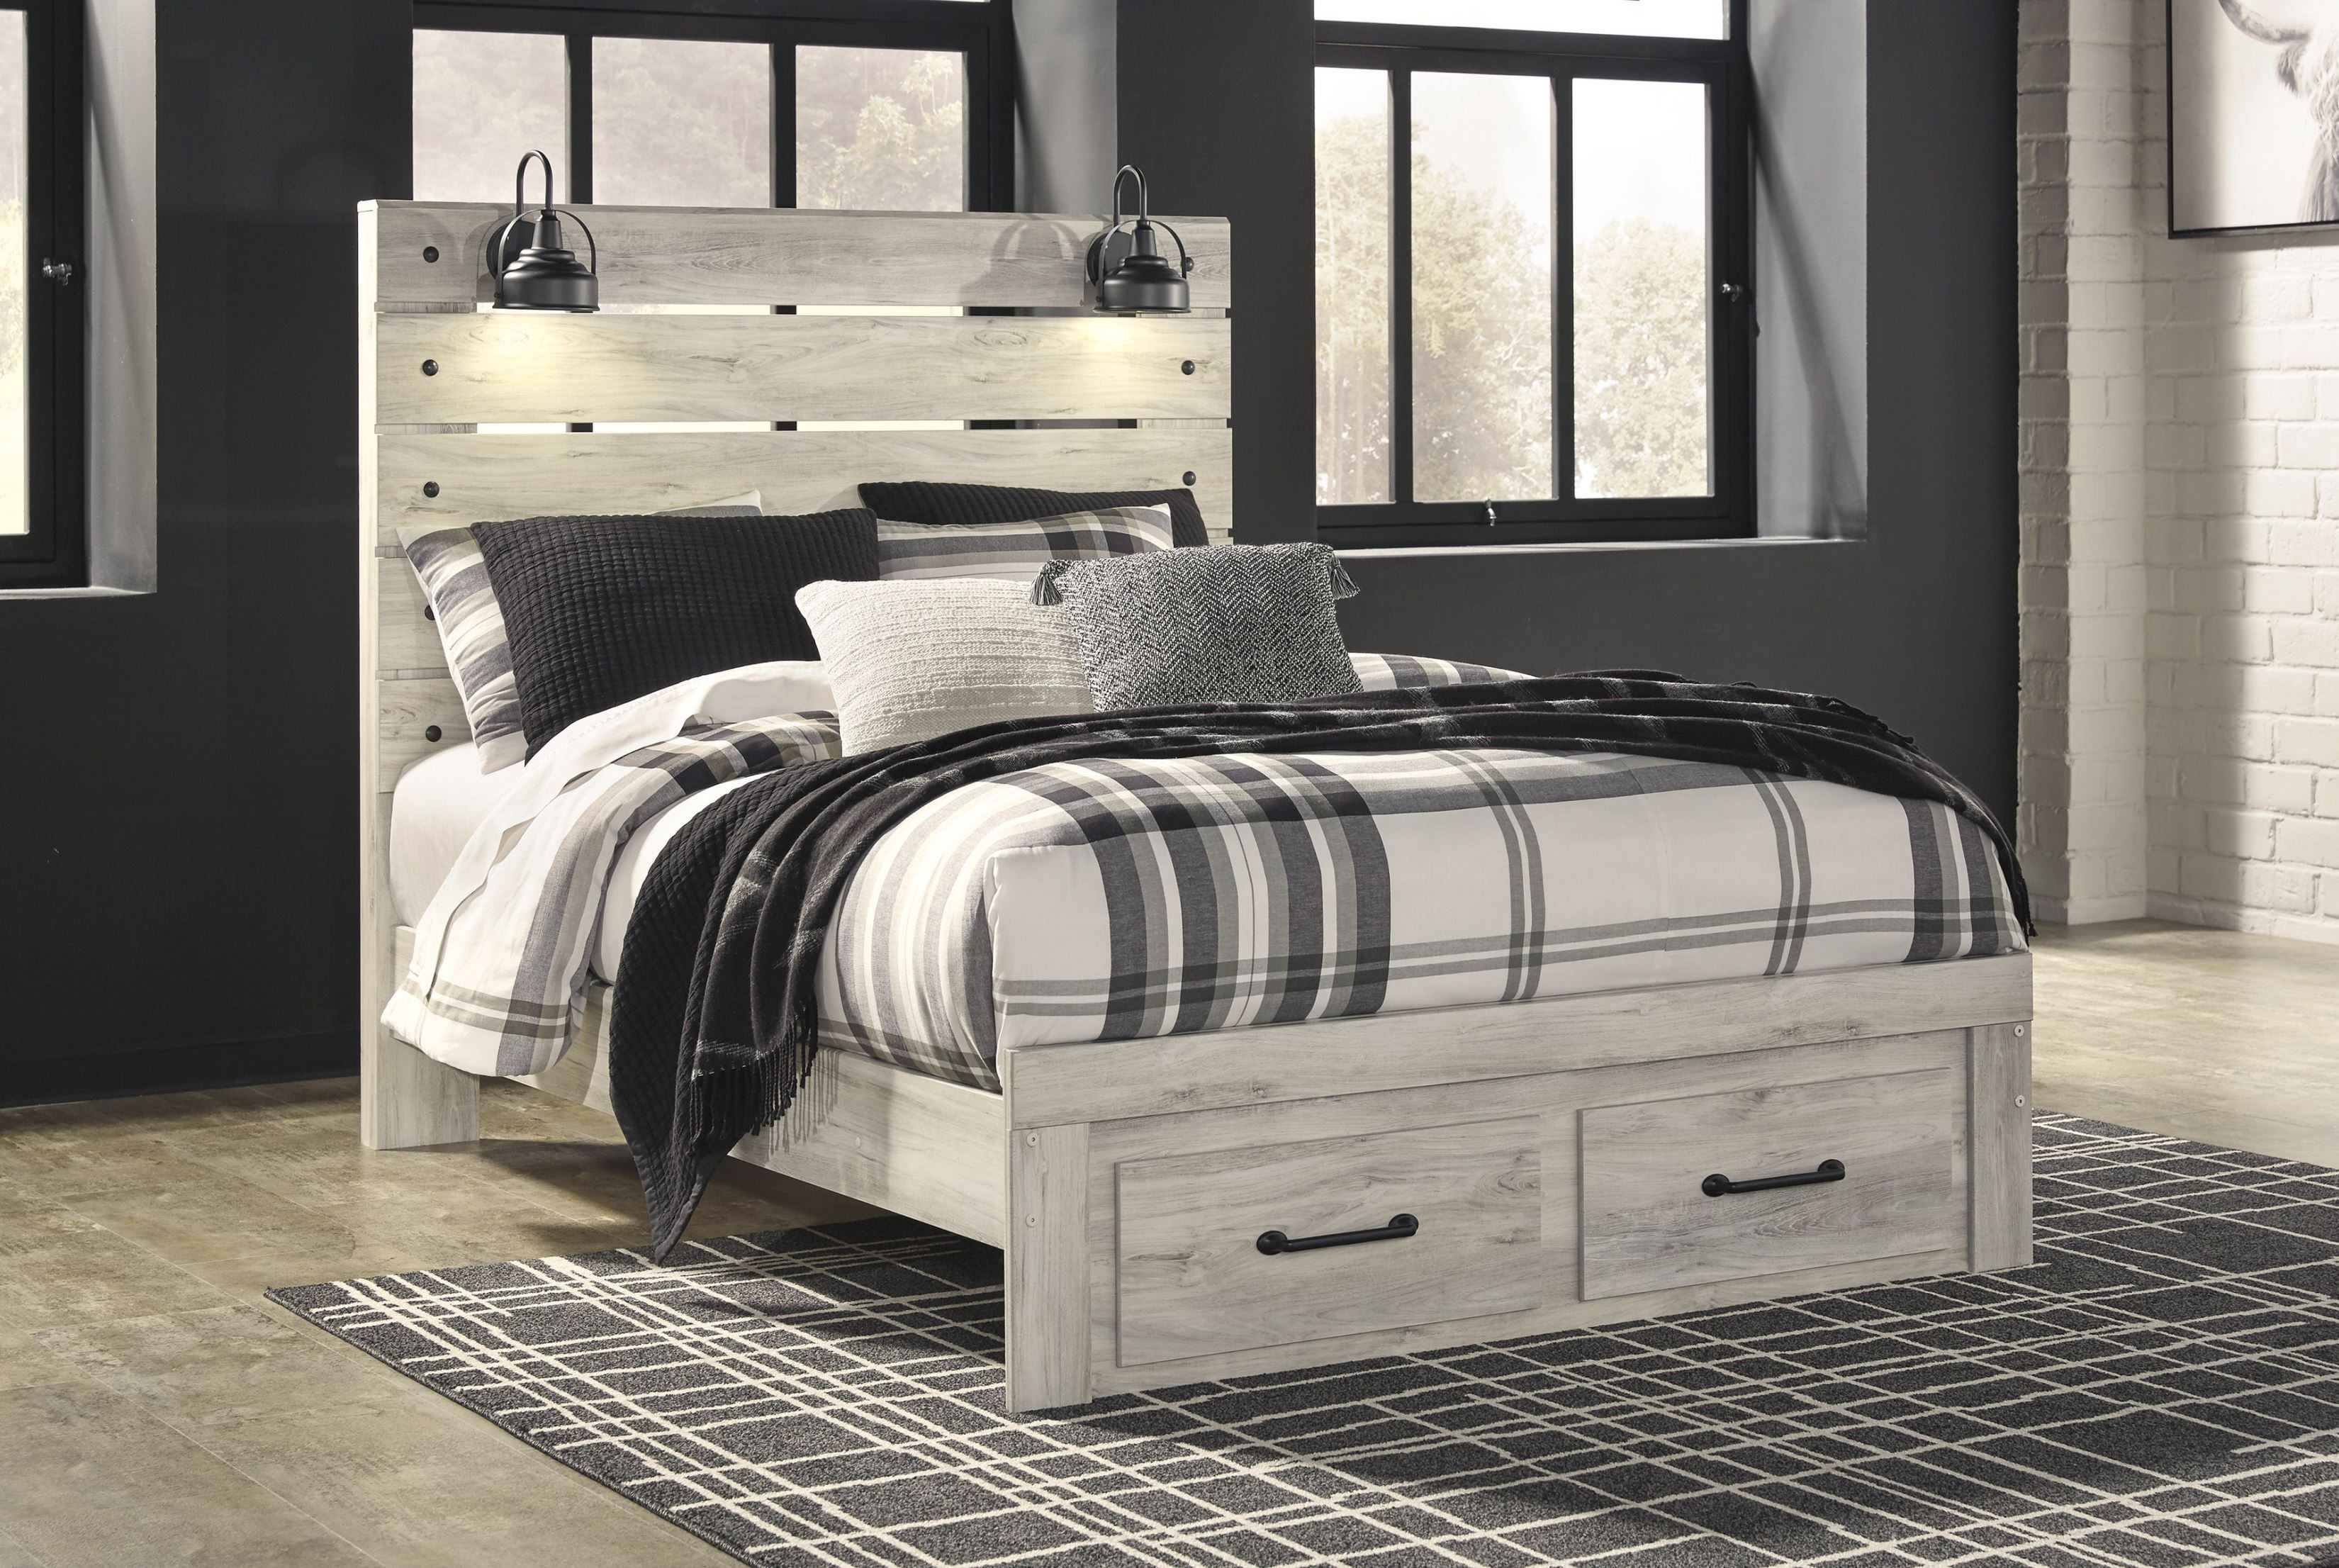 Cambeck Whitewash Panel Storage Bedroom Set